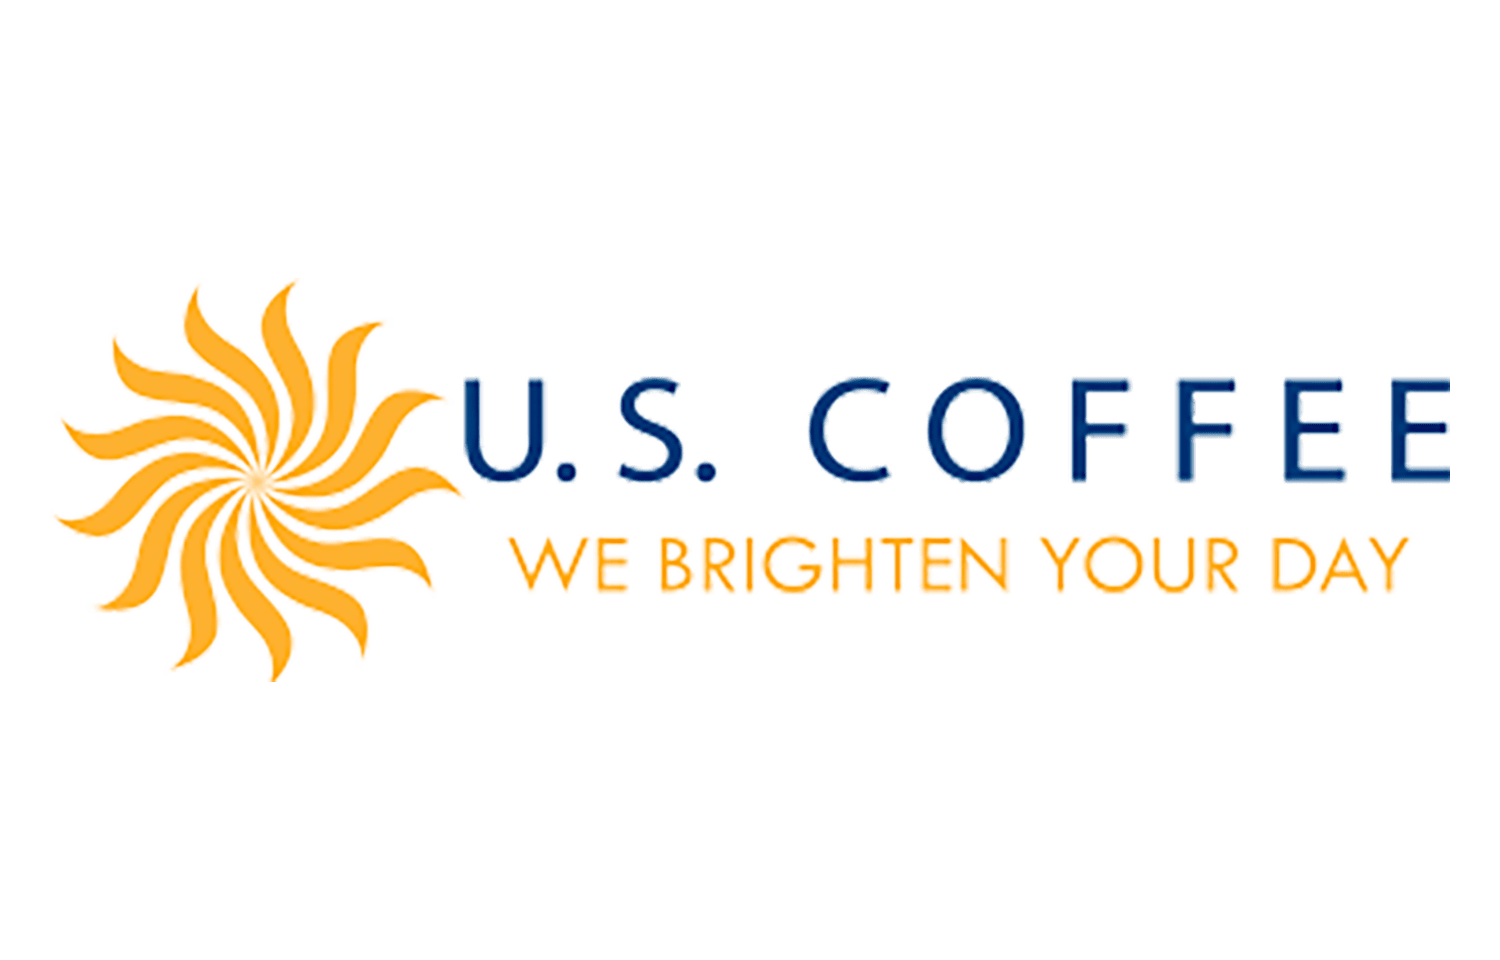 US Coffee | We Brighten Your Day